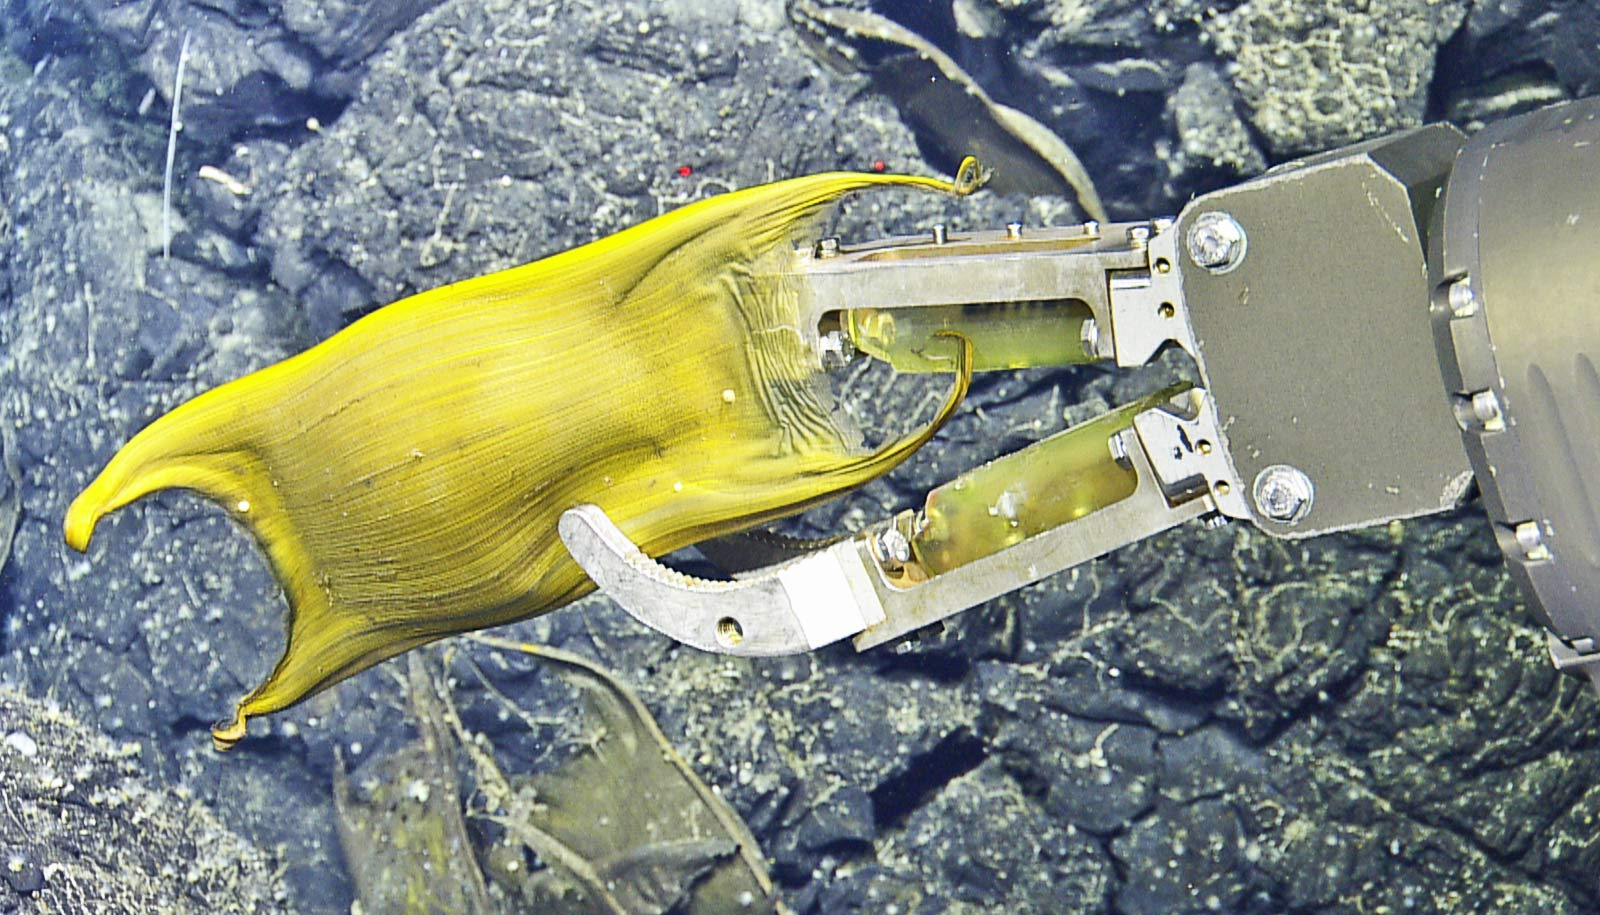 ROV arm holds skate egg case